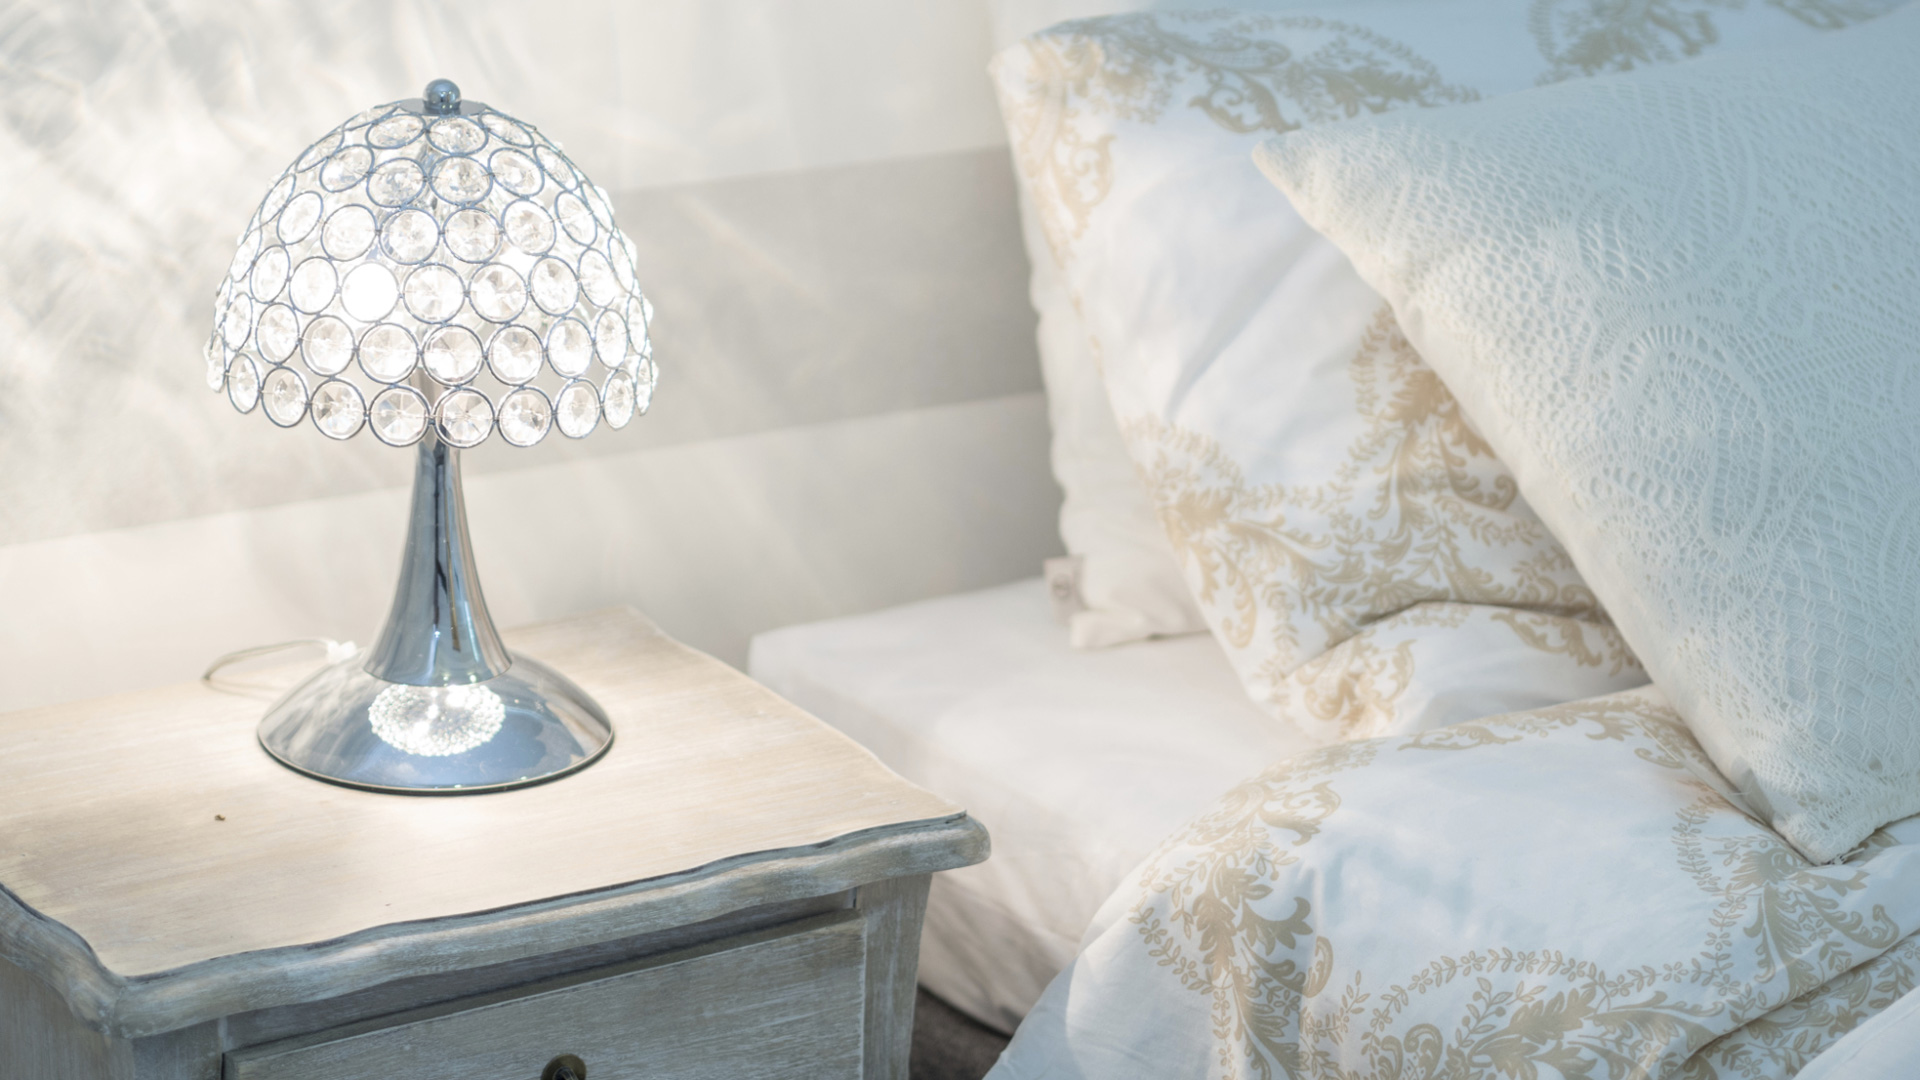 Bedroom with glass lamp